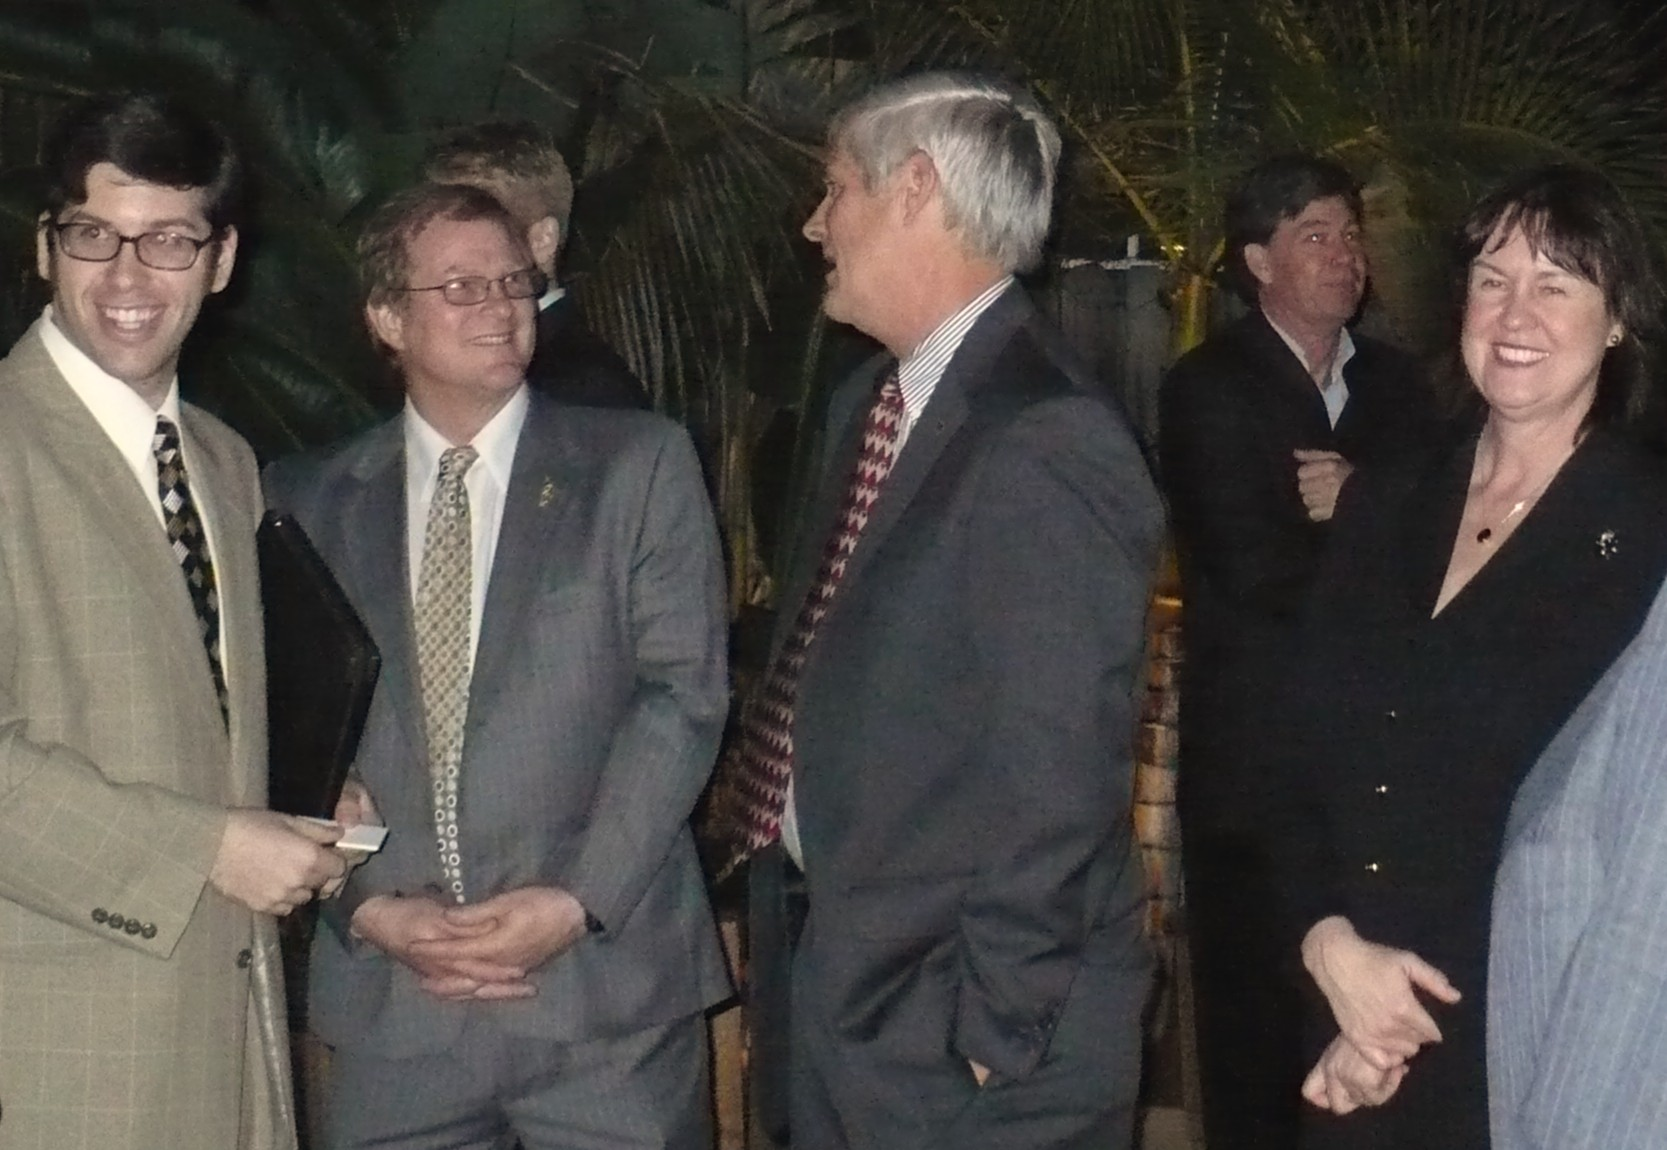 Judge Jim Gray's retirement party was held last night at the home of Tony and Freydel Bushala, in Fullerton. The event drew a large, bipartisan crowd. Orange County Supervisor Chris […]